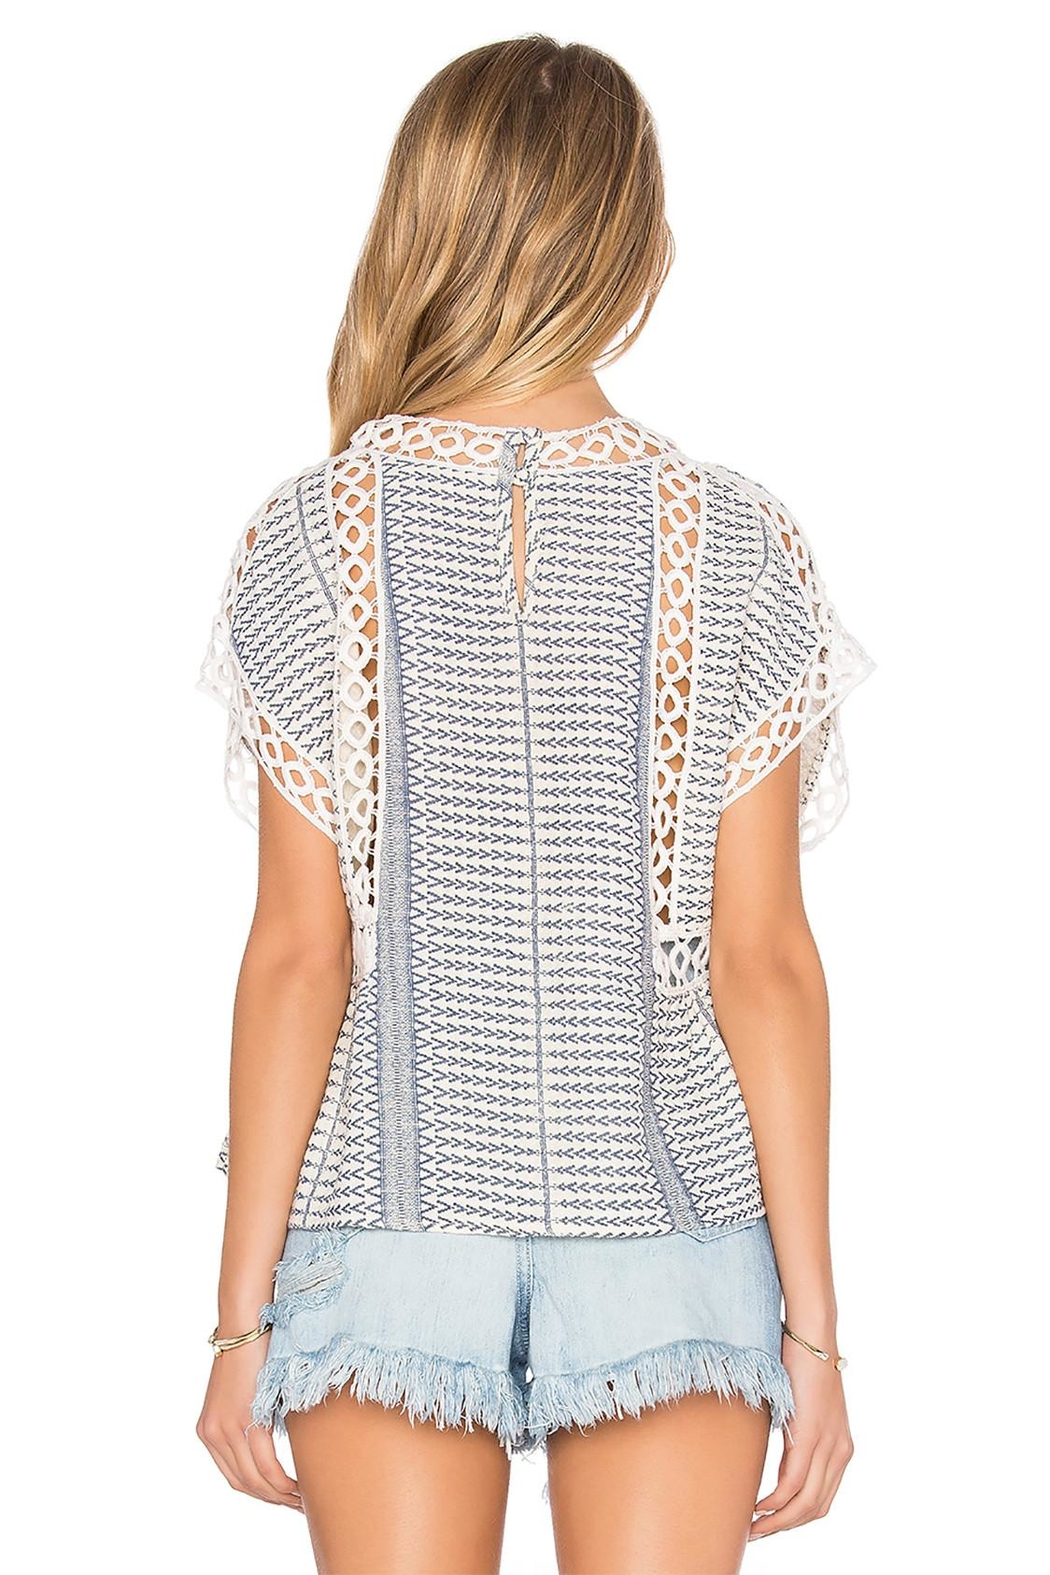 Tularosa  Marla Embroidered Top - Side Cropped Image